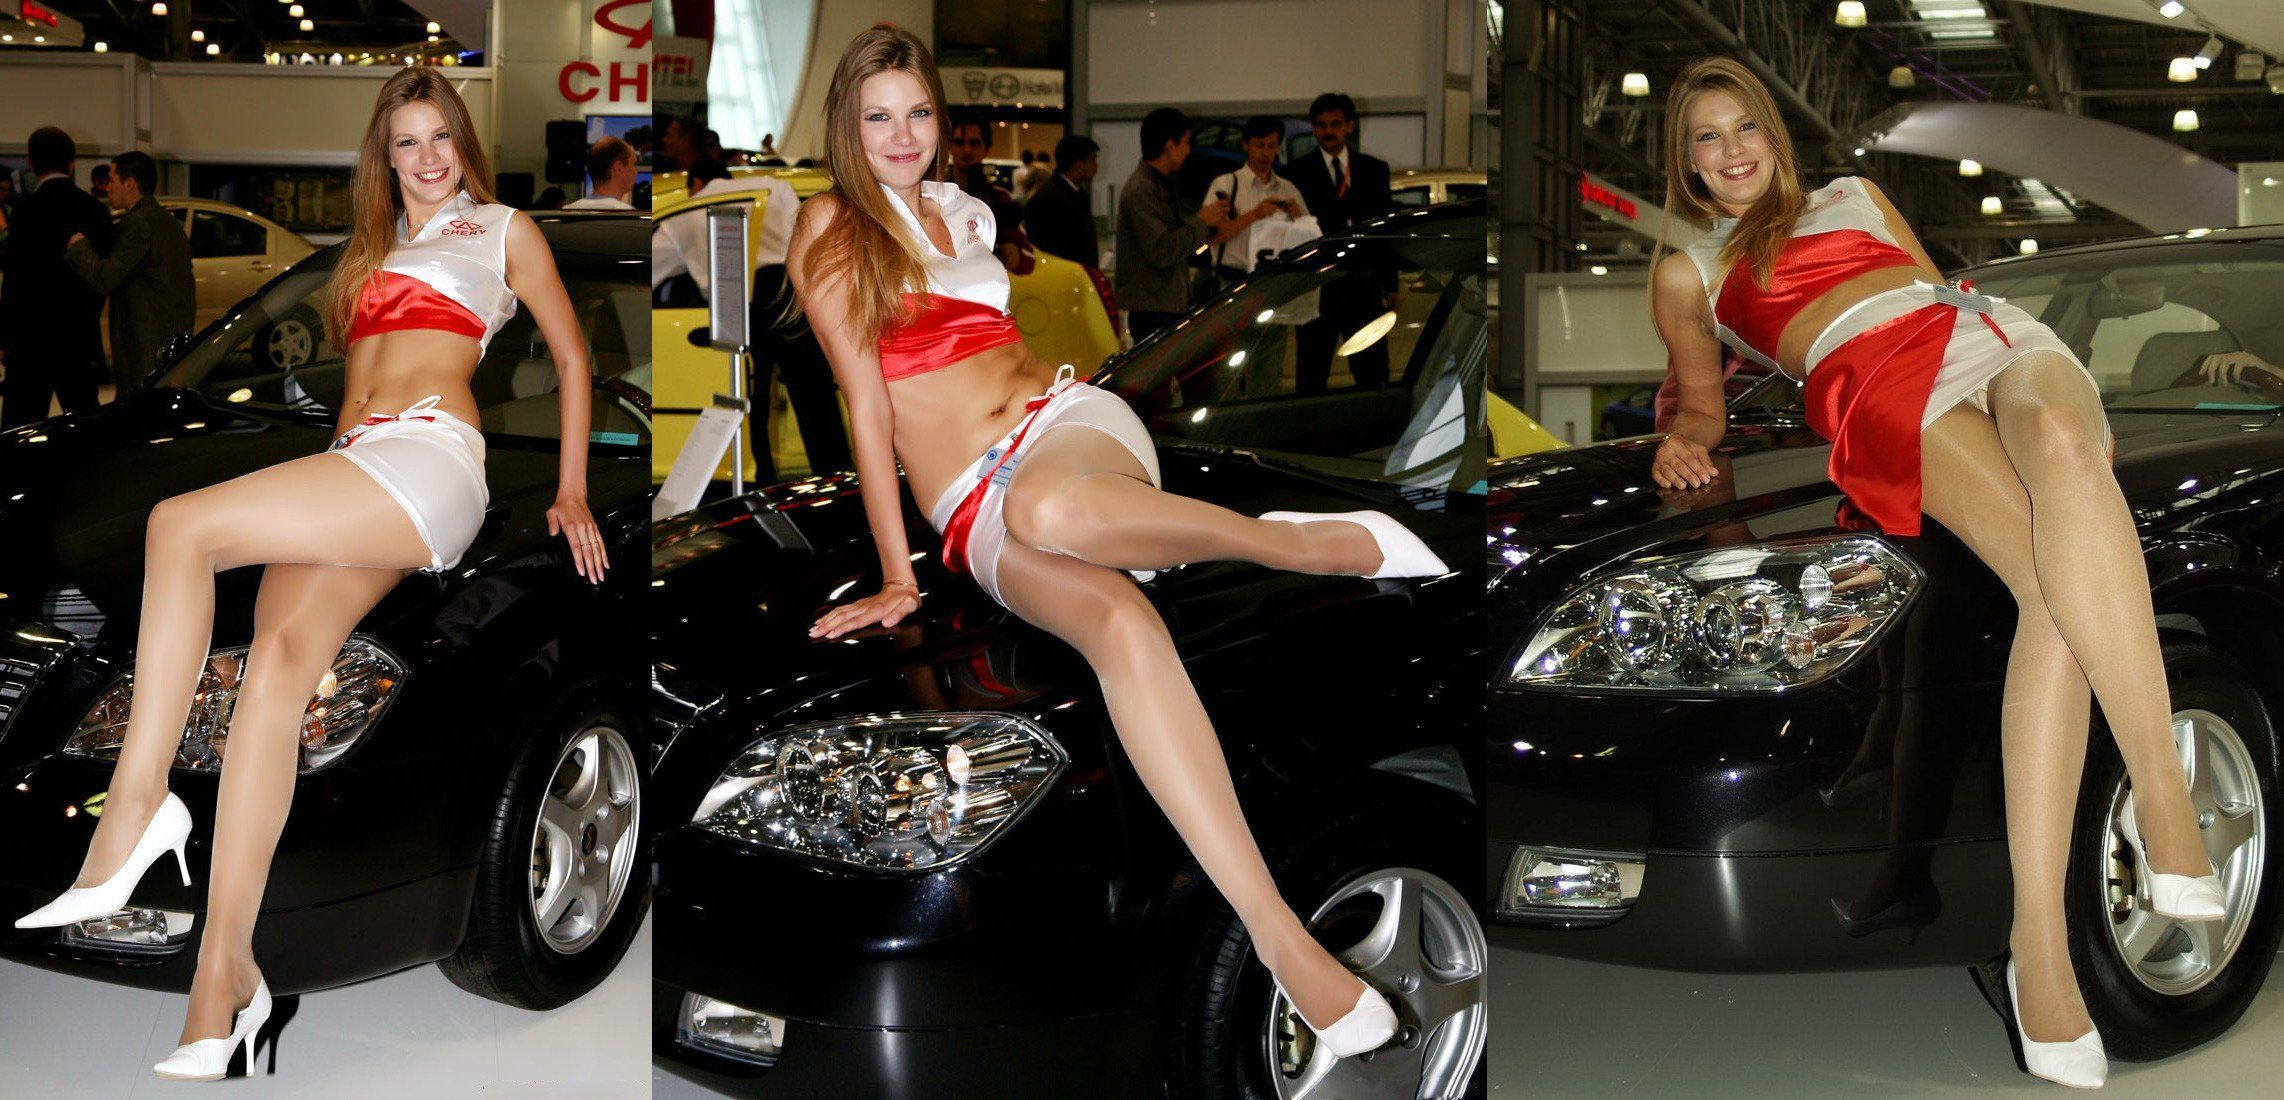 Carshow Upskirt at